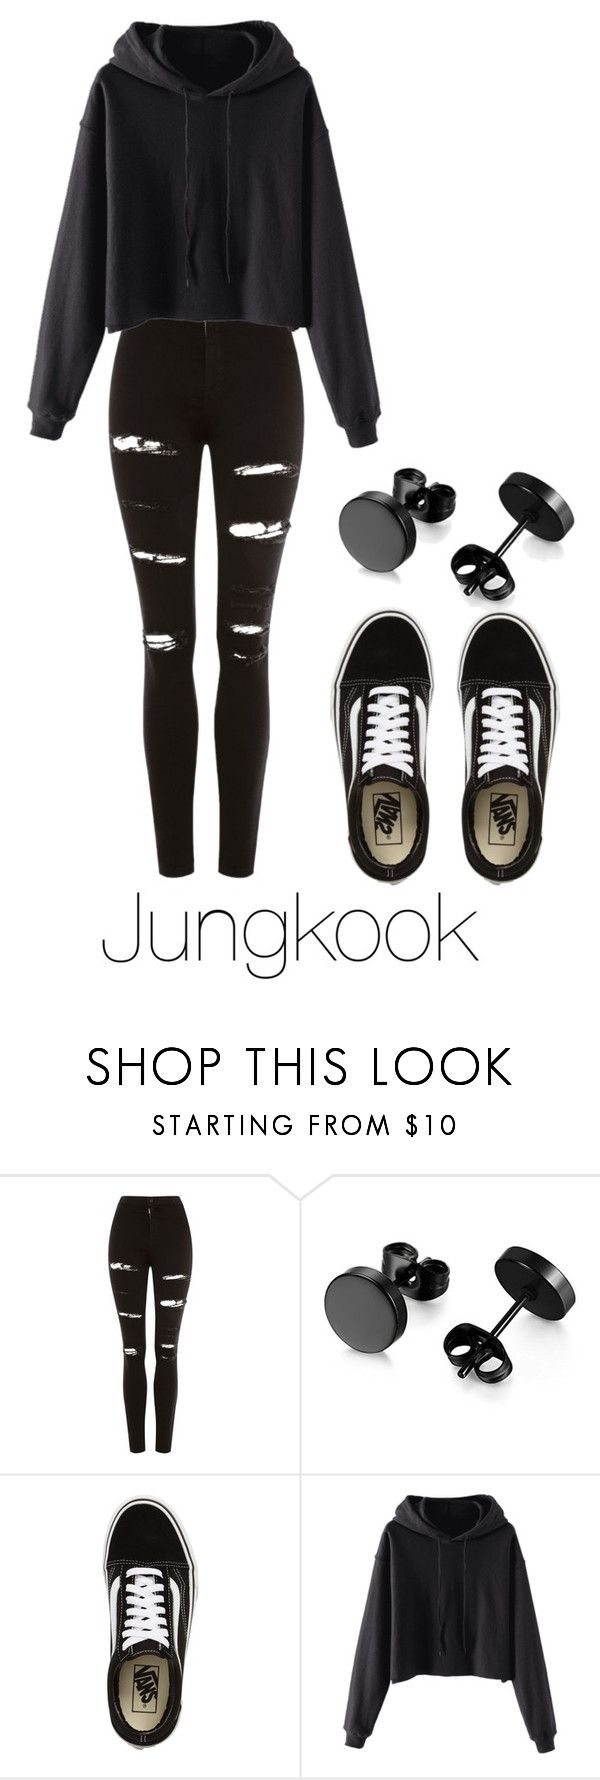 """Jungkook"" by jakellinne on Polyvore featuring moda, Topshop e Vans"